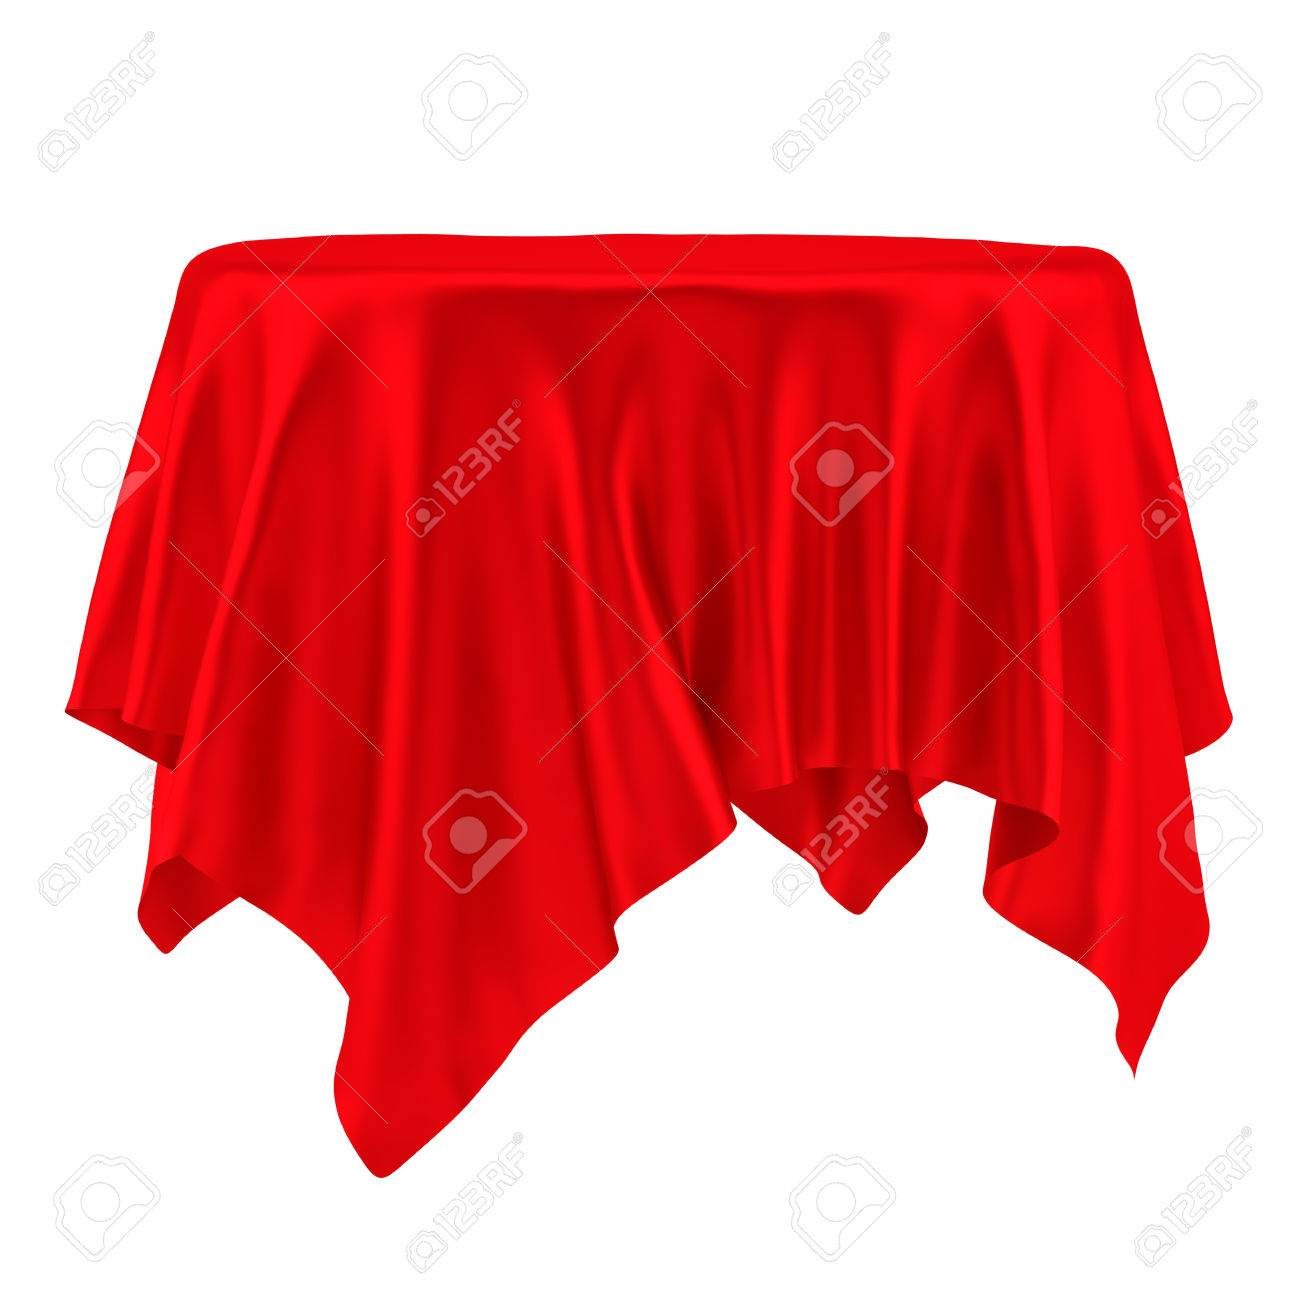 Empty Round Red Table Cloth. Isolated On White Background. 3D Illustration  Stock Illustration